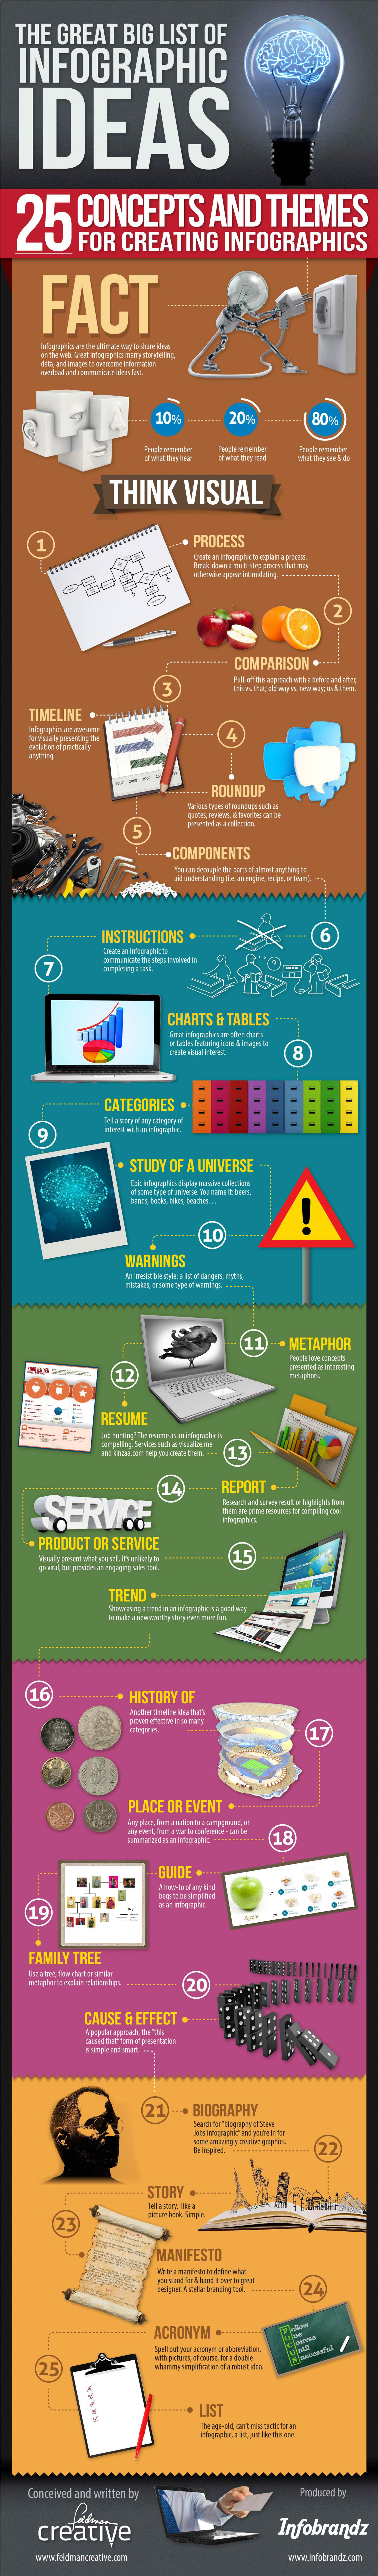 The Great Big List of Infographics Ideas Infographic